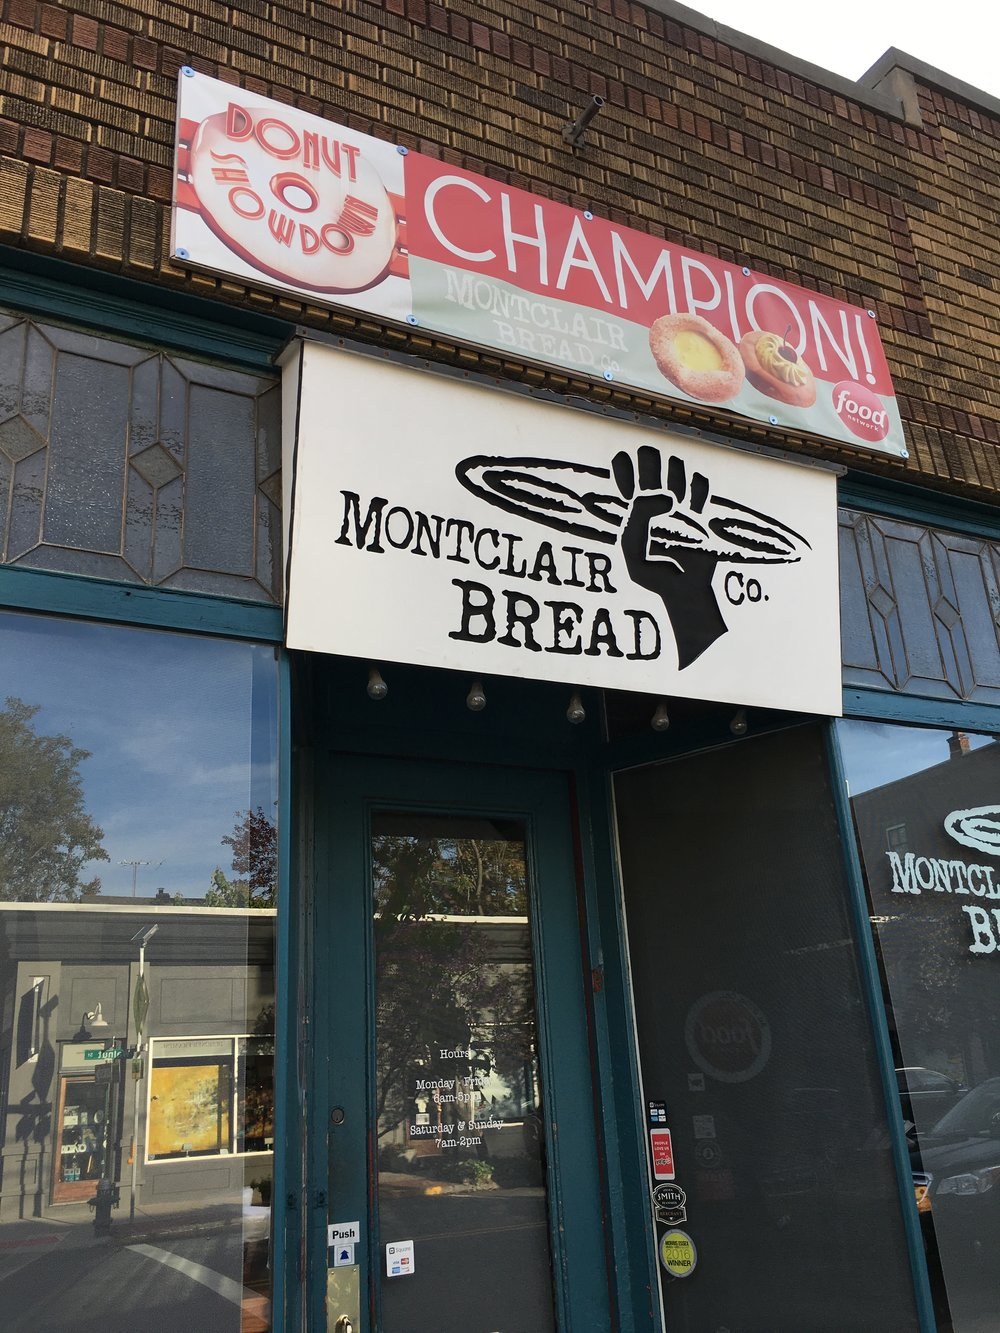 Small Town NJ: Montclair - Montclair Bread Co.